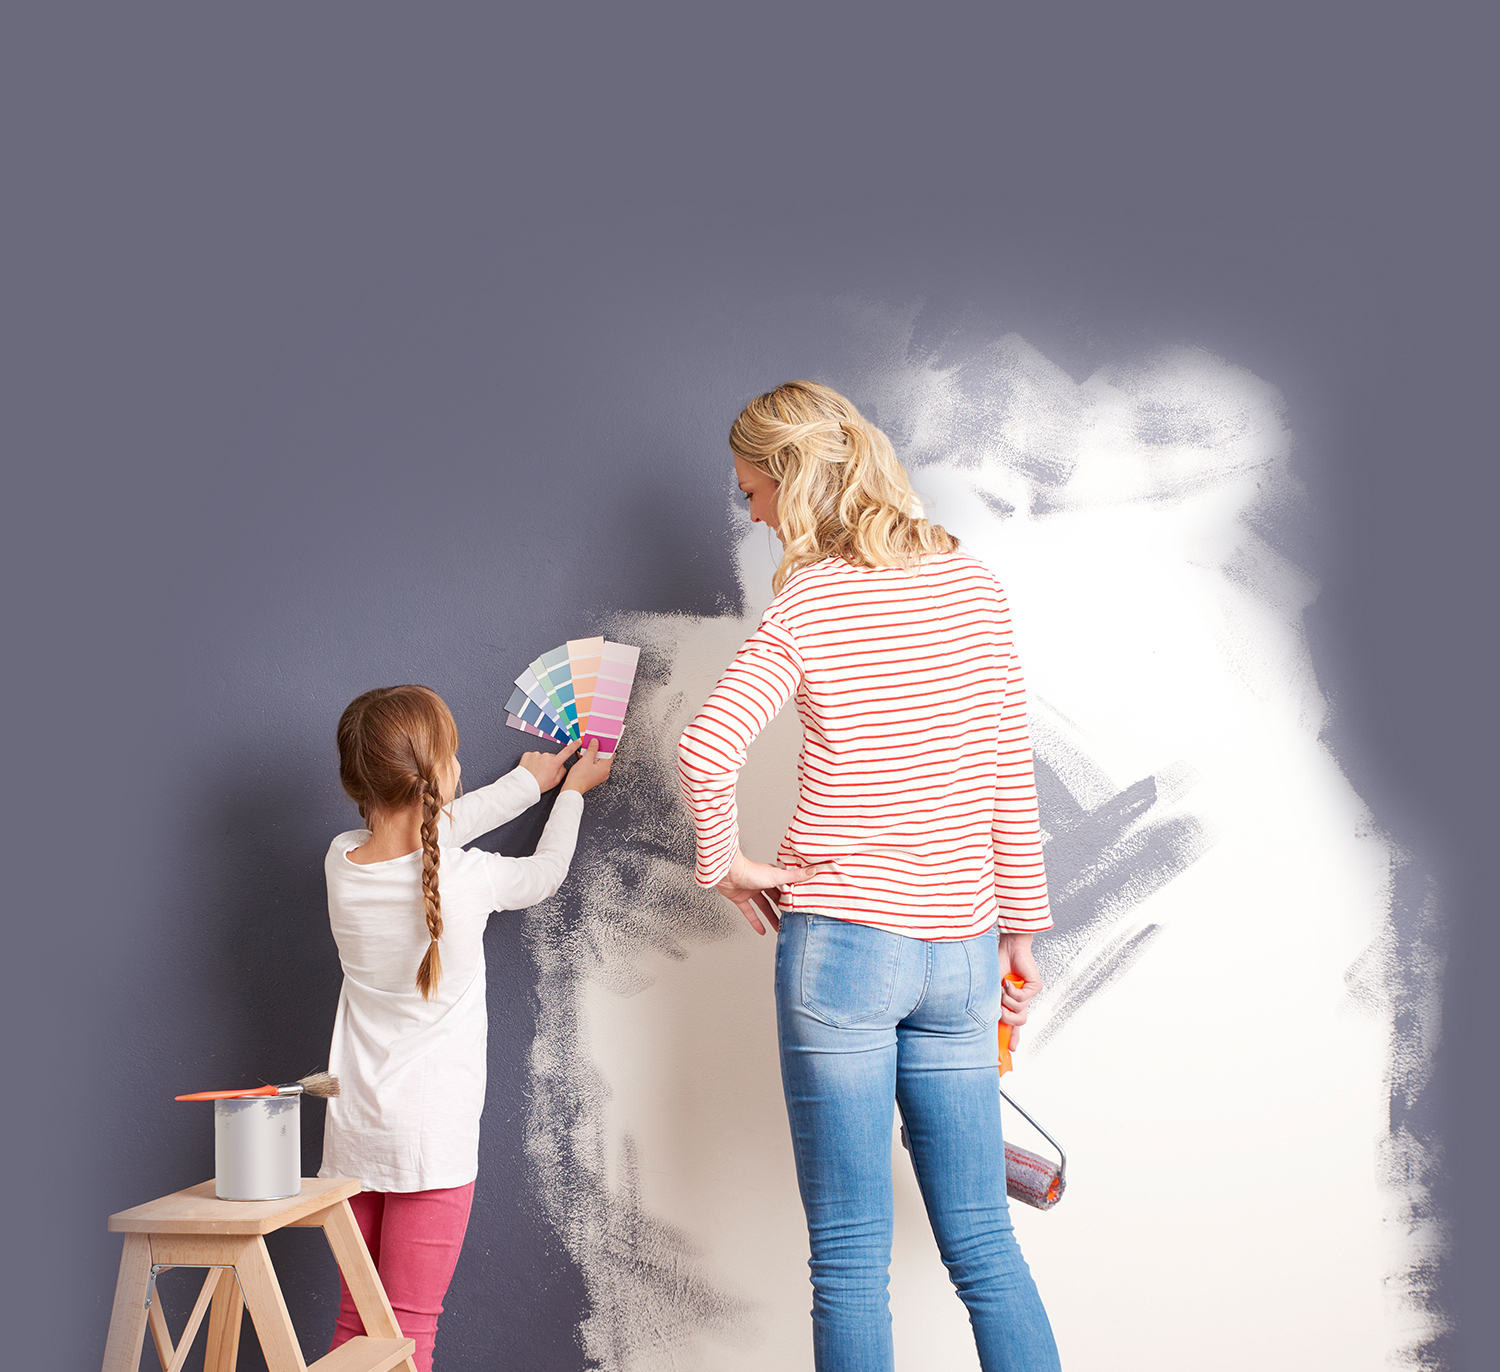 home painting wall mother and daughter